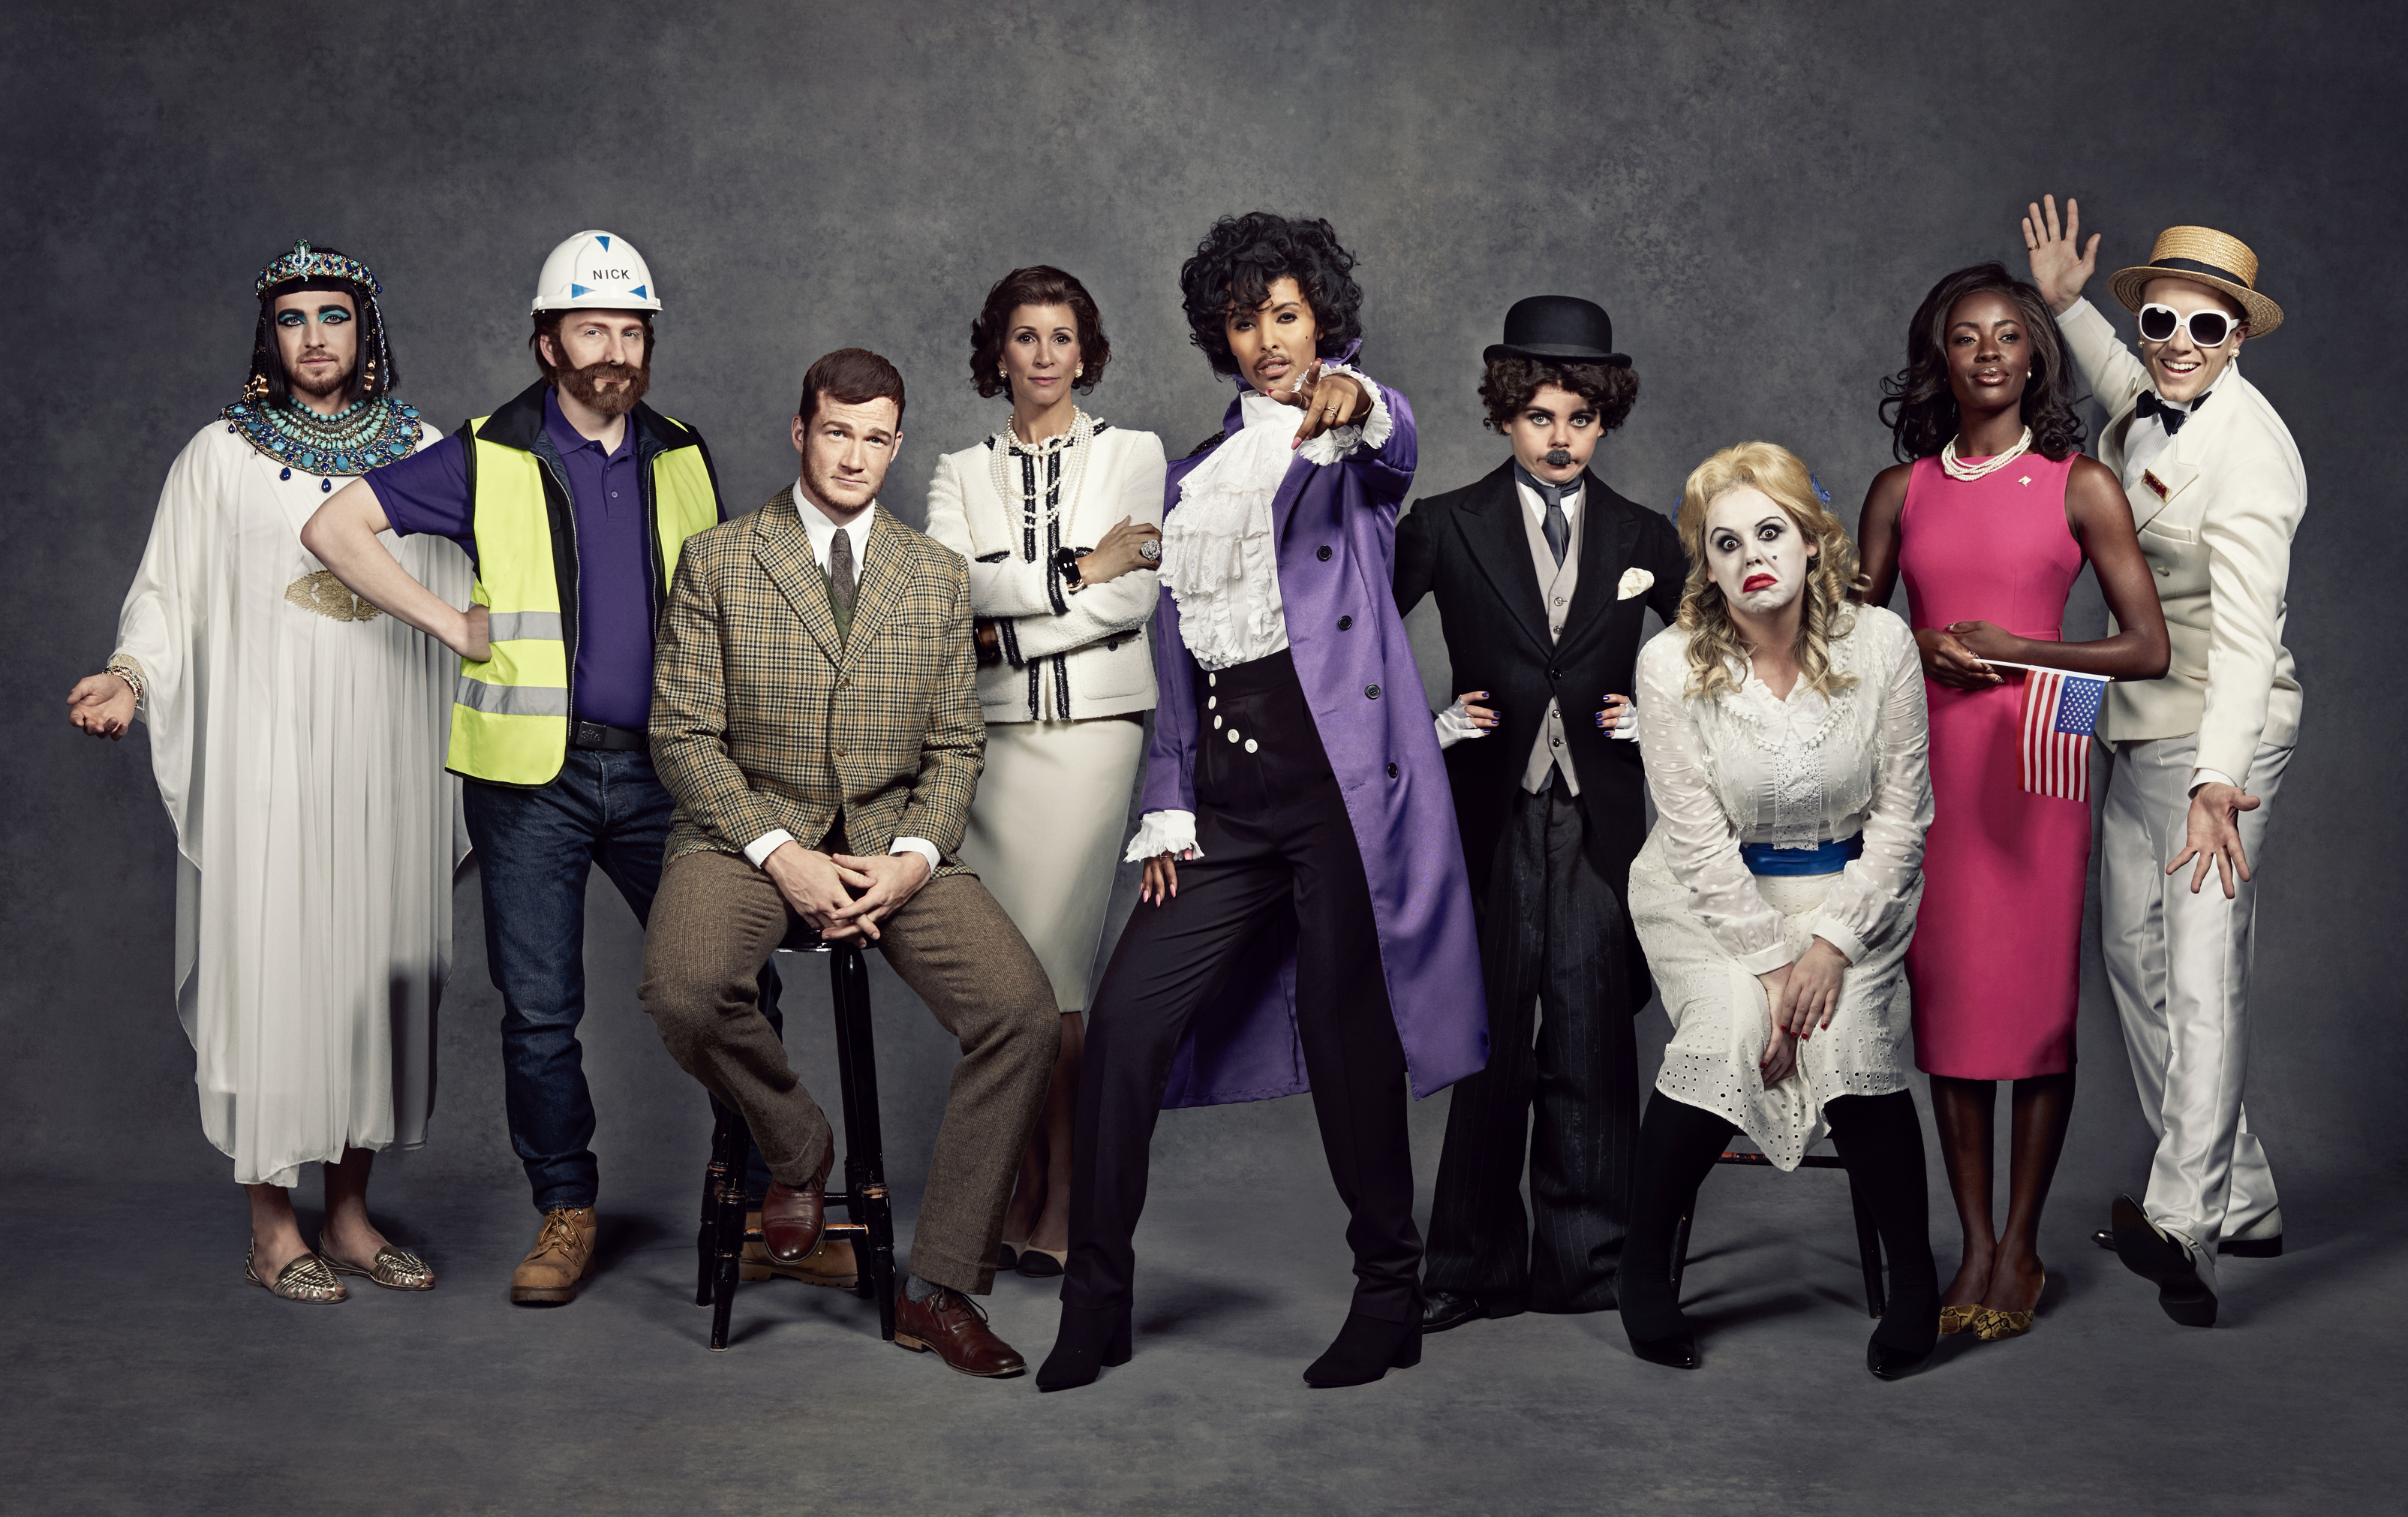 Sam Thompson, Joe Lycett, Greg Rutherford, Andrea McLean, Maya Jama, Saoirse-Monica Jackson, Roisin Conaty, AJ Odudu and Roman Kemp dressed up as trailblazers for Stand Up To Cancer